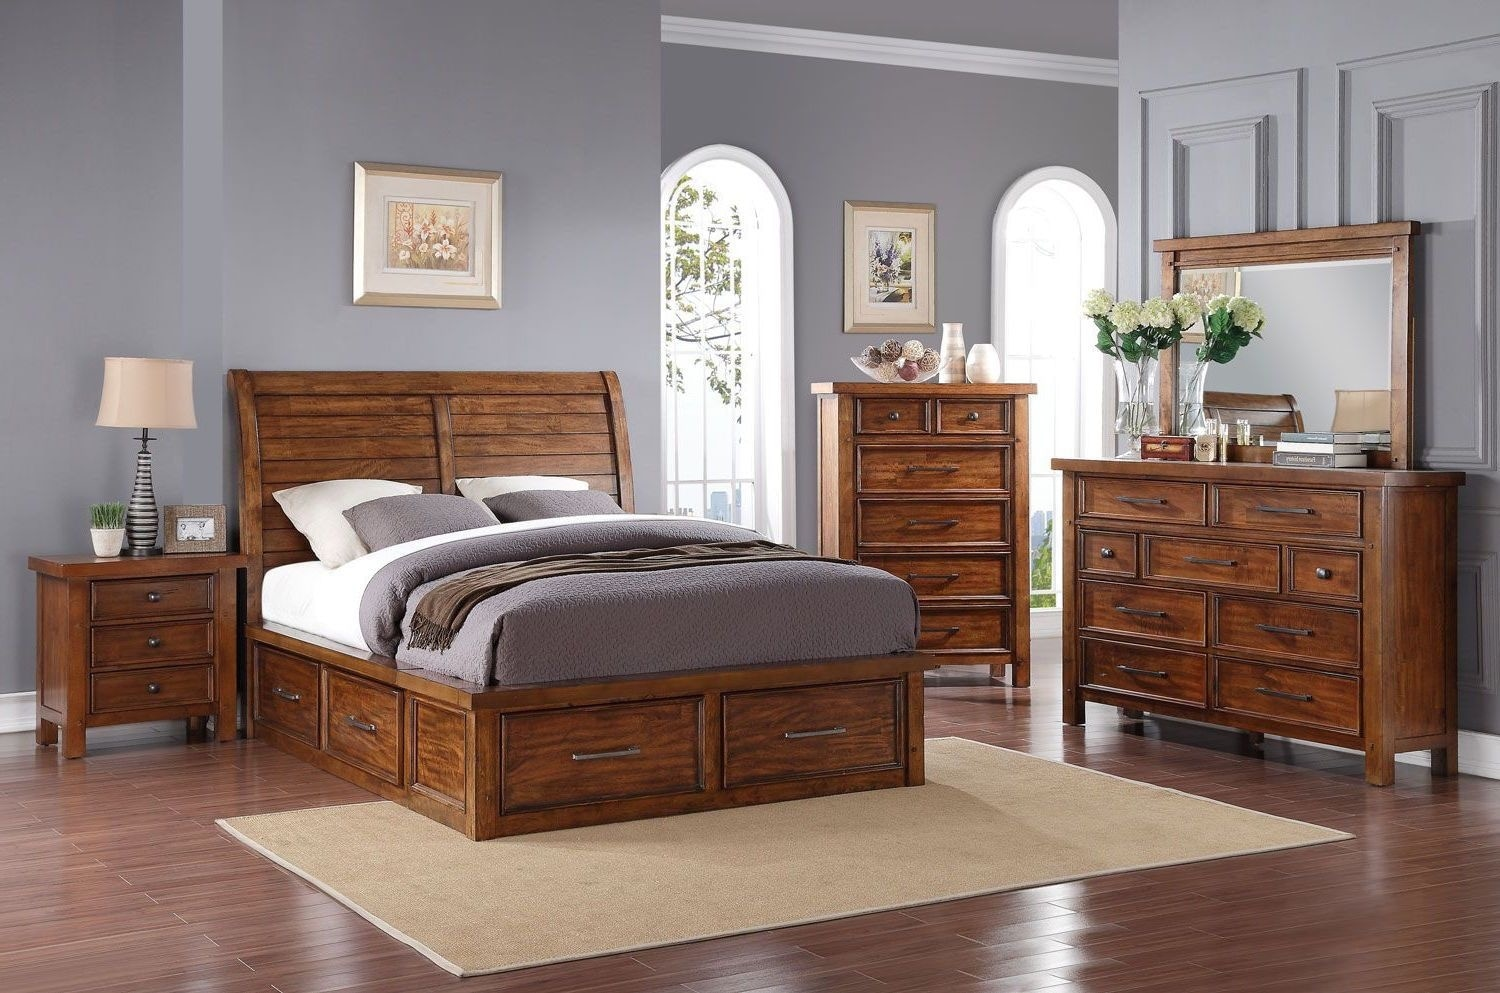 Bedroom Furniture - Sonoma 5-Piece Queen Storage Bedroom Package – Light Brown